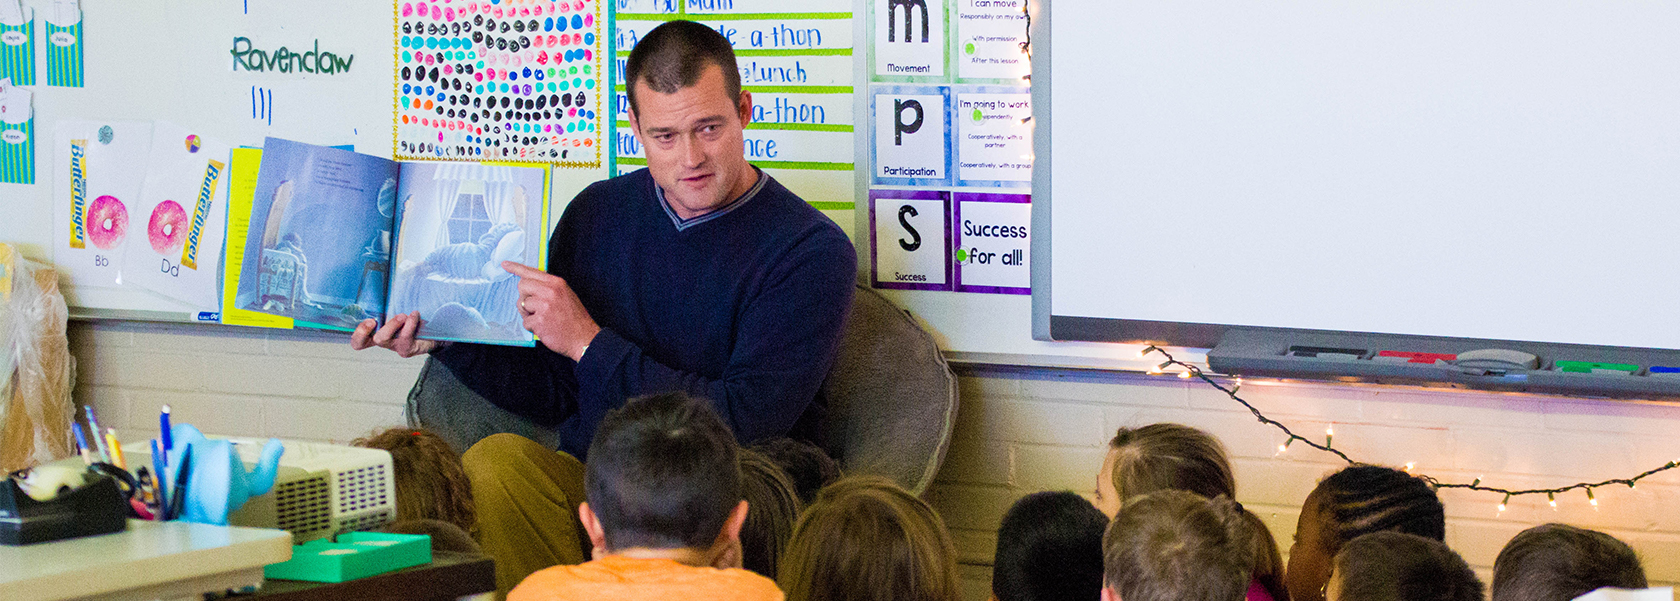 Kenneth Upham Reading to Students